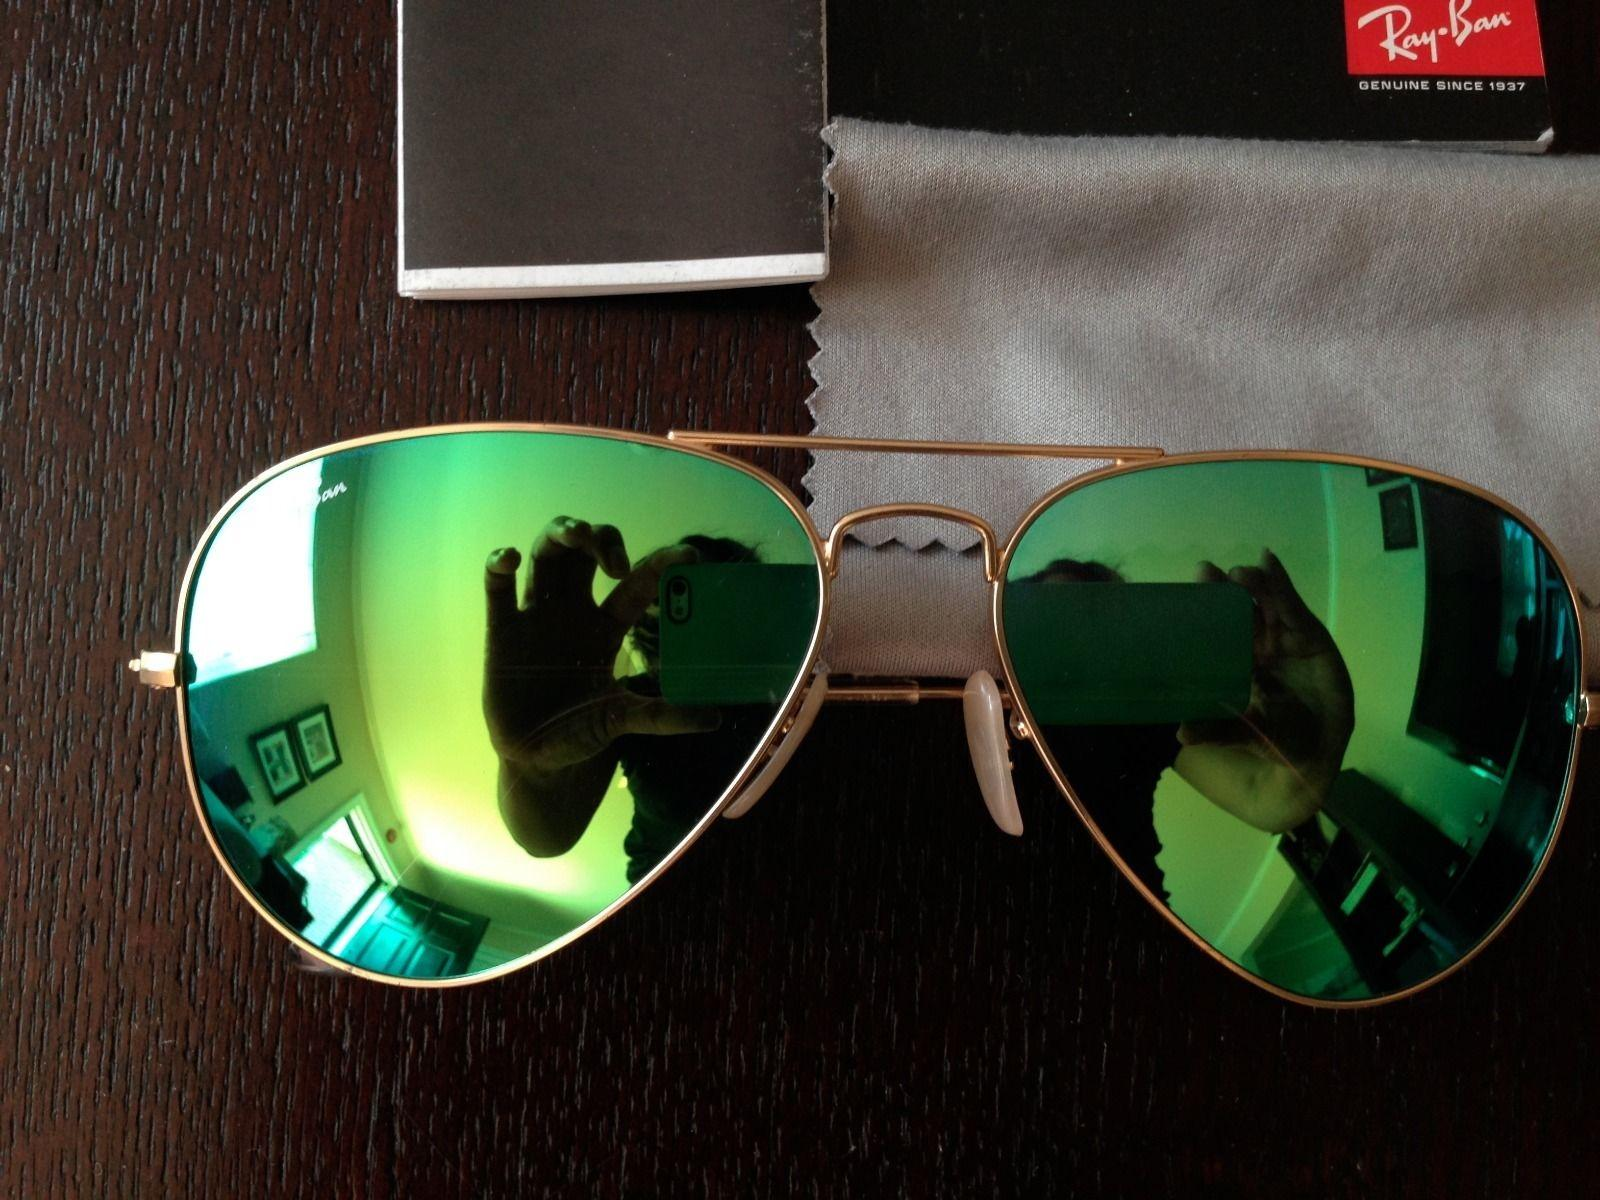 well-wreapped Ray-Ban Aviator Mirror Lens - Gold frame Green lens